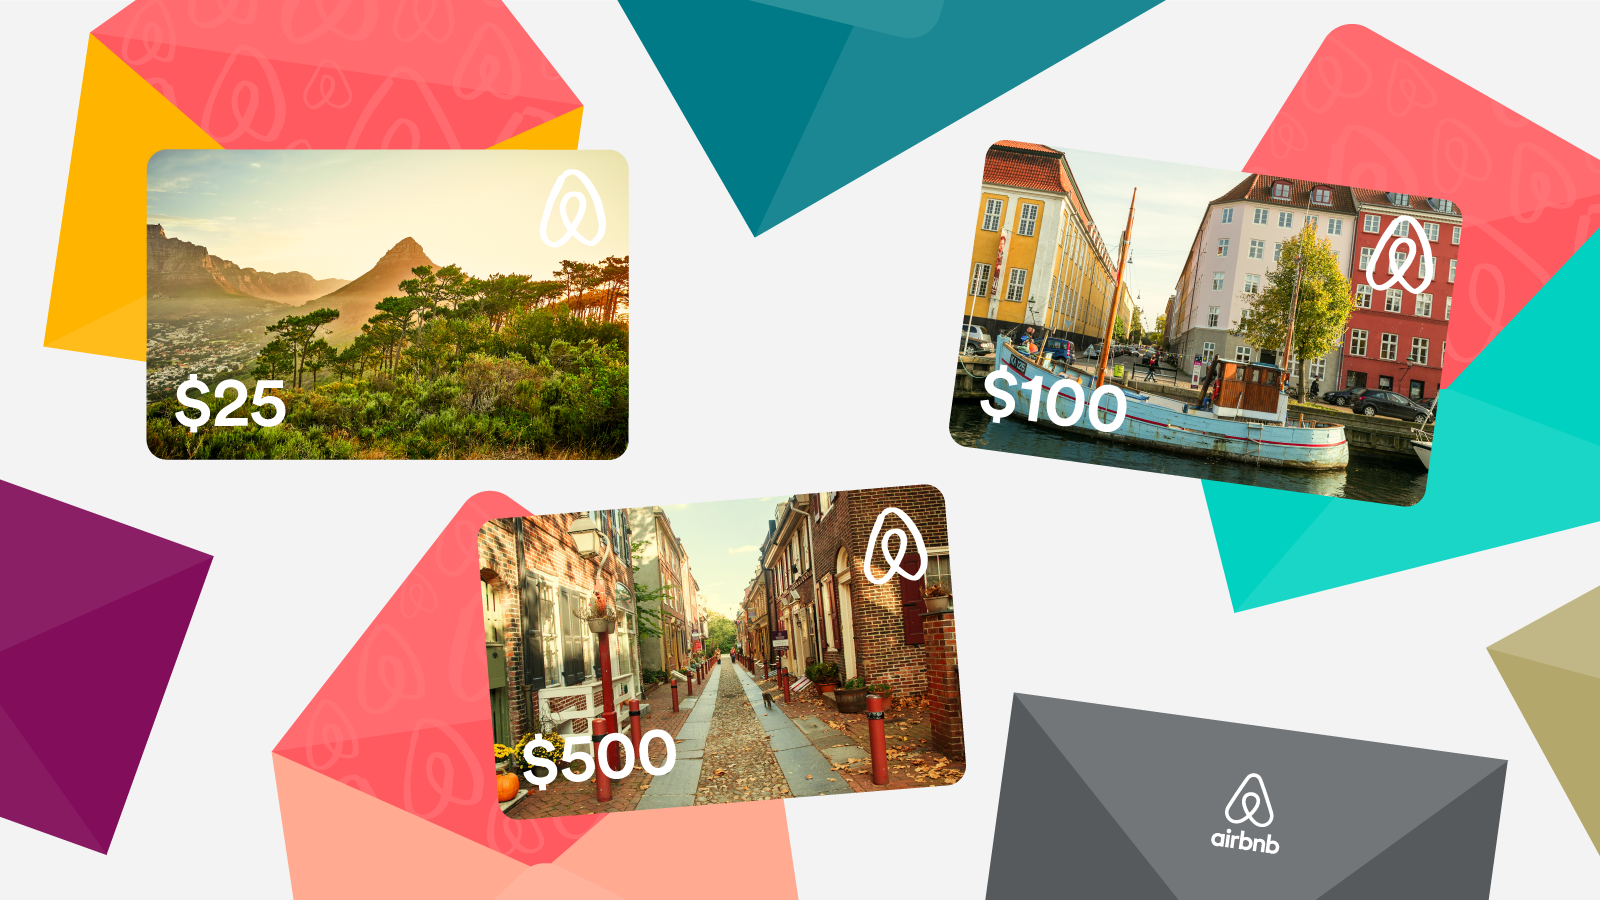 Share the World: Introducing the Airbnb Gift Card